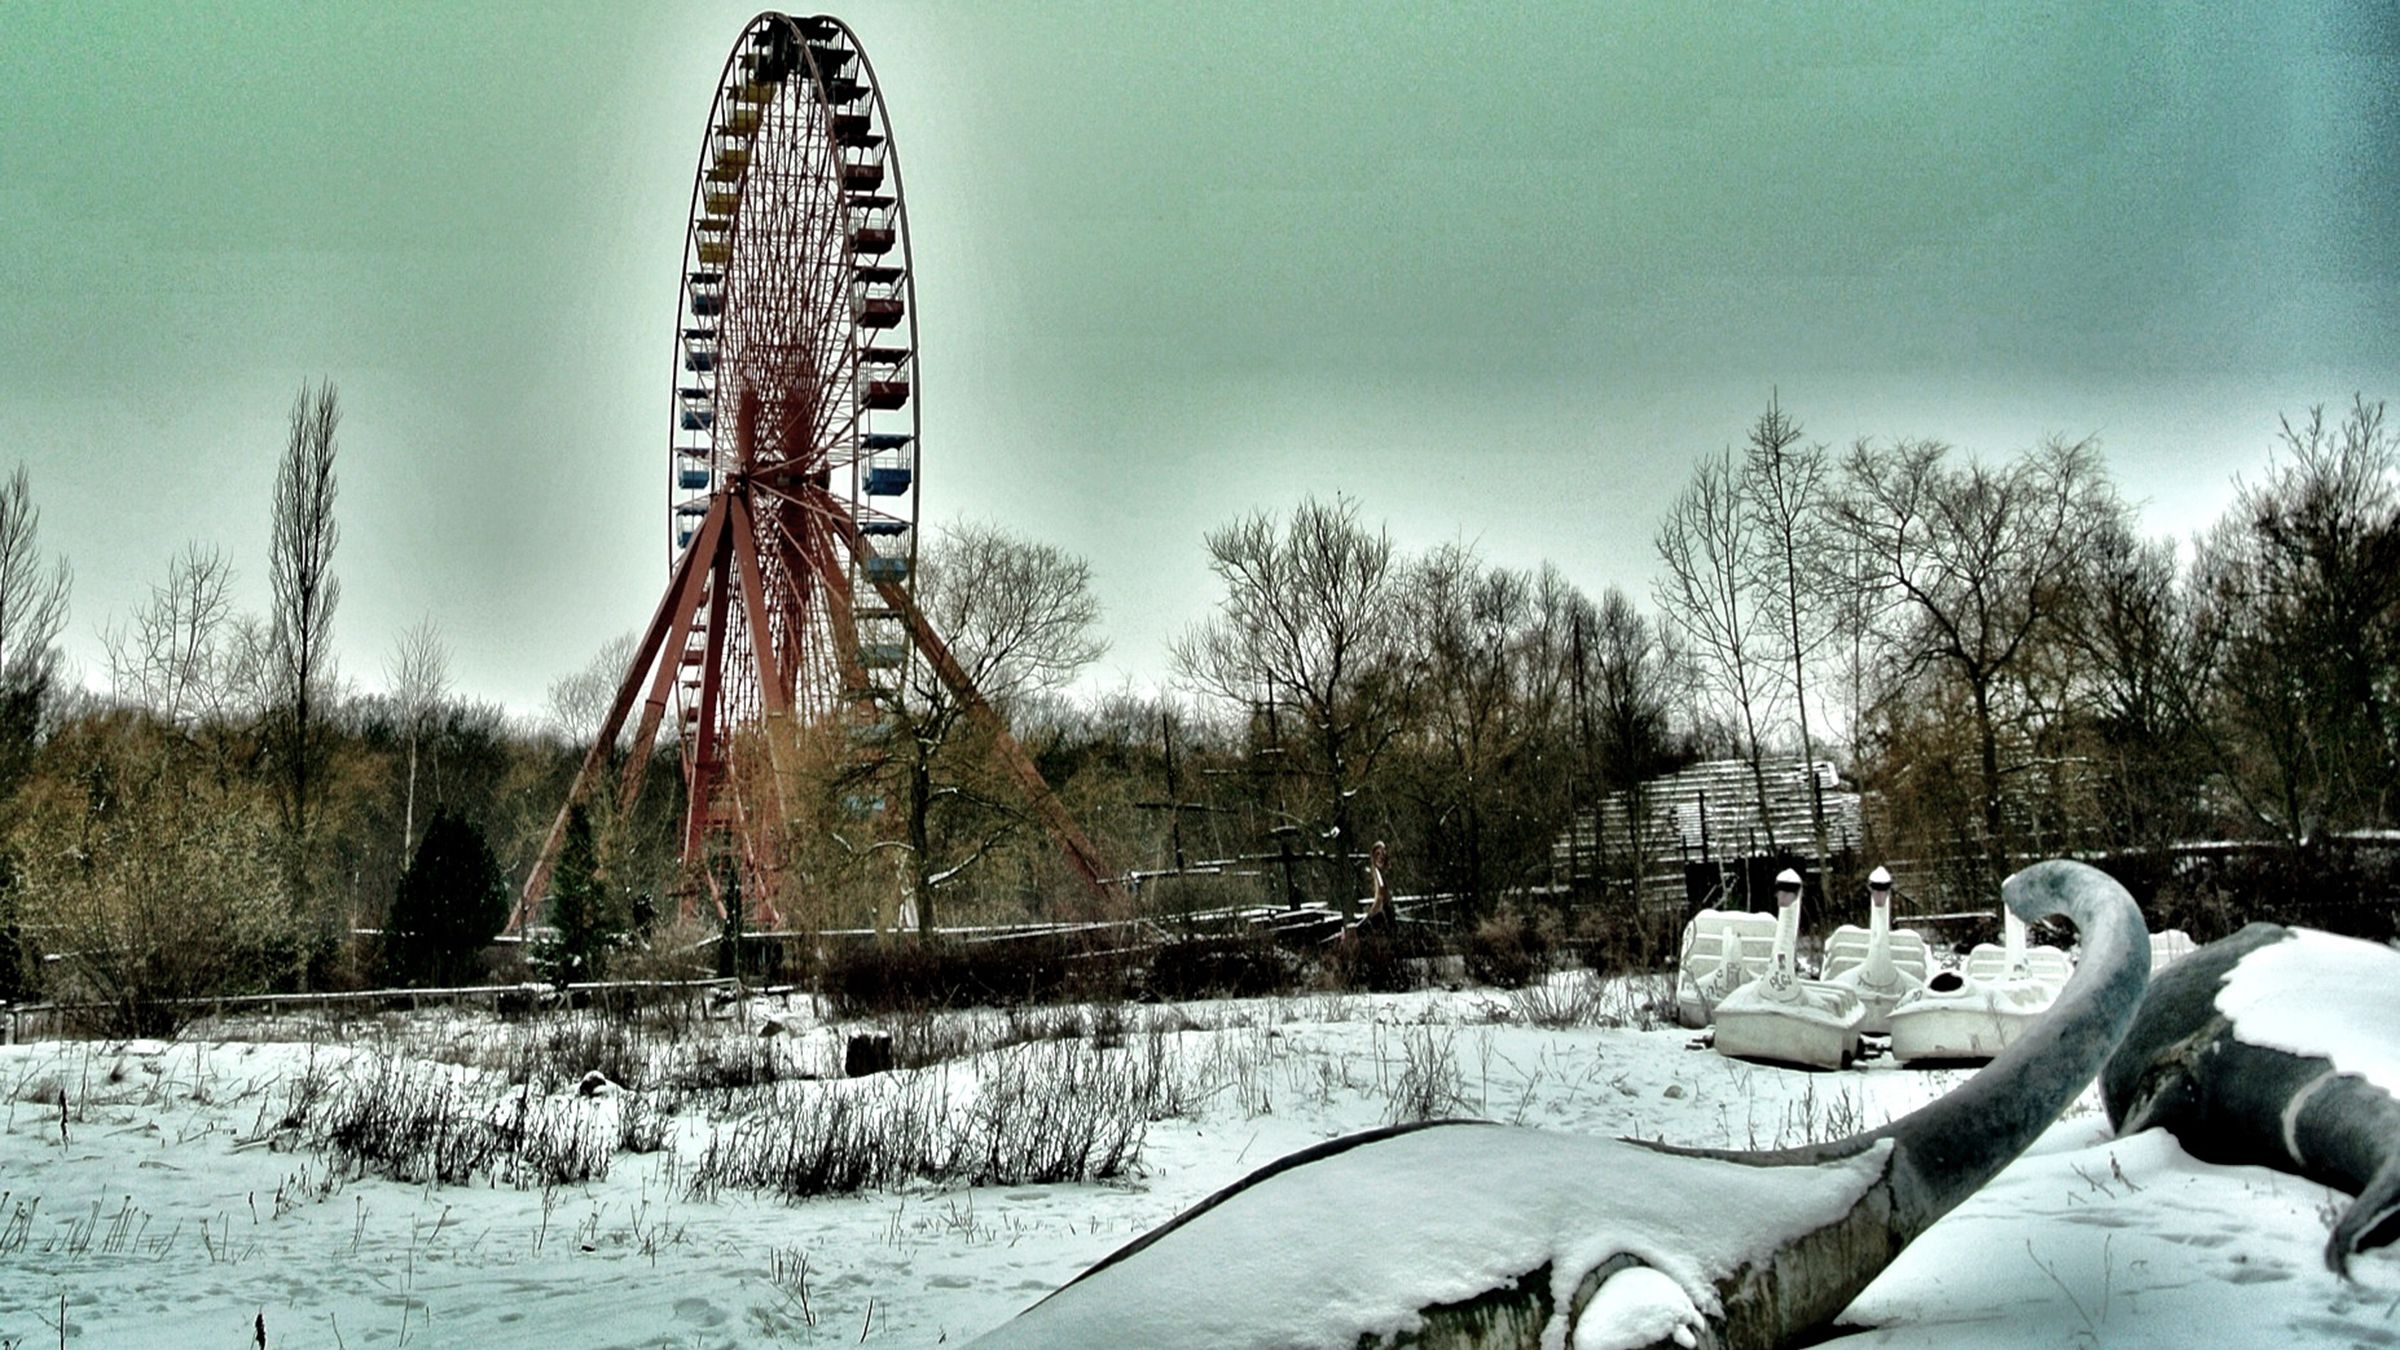 Berlin's abandoned Spreepark before it was destroyed in a fire.